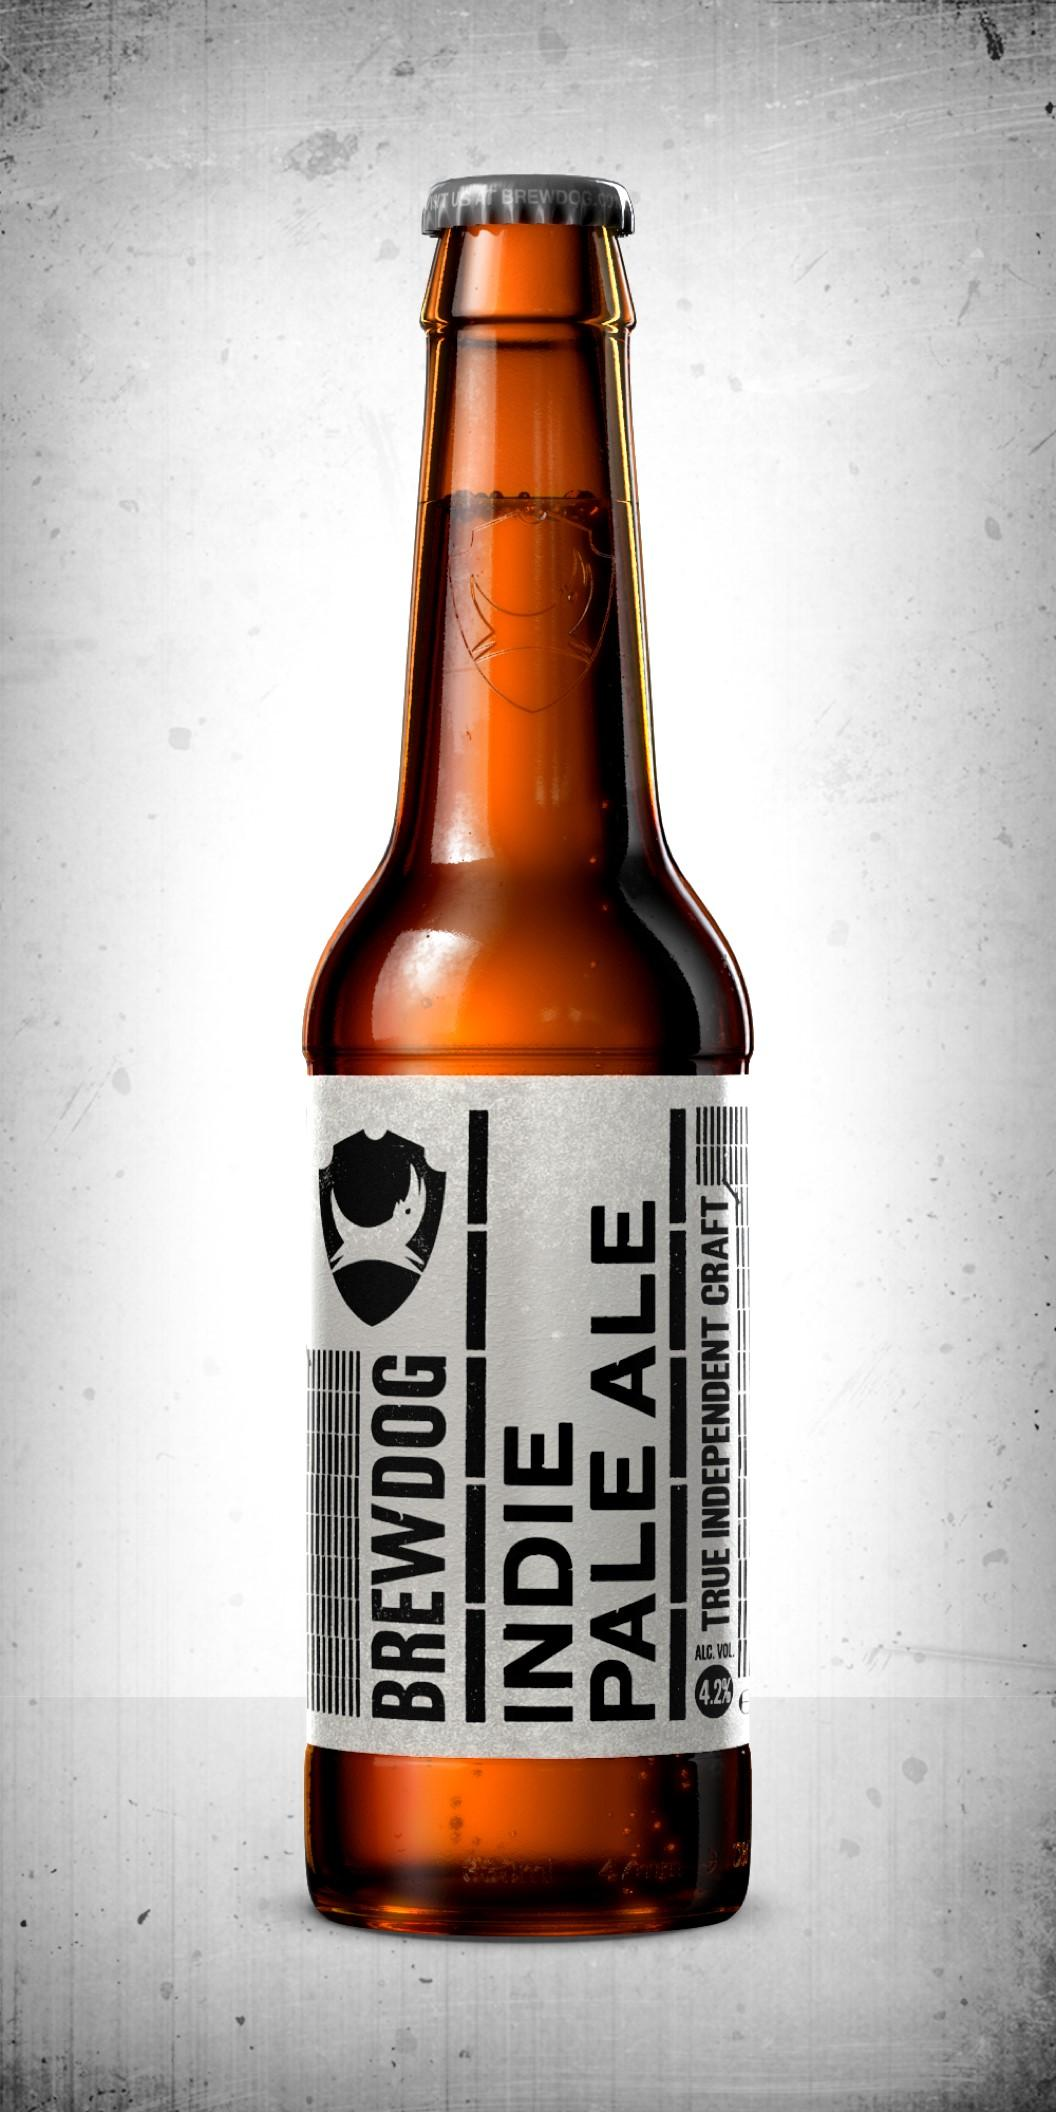 Brewdog Indie Pale Ale (12 X 330ml Bottles) Special Promo By The Good Beer Company.